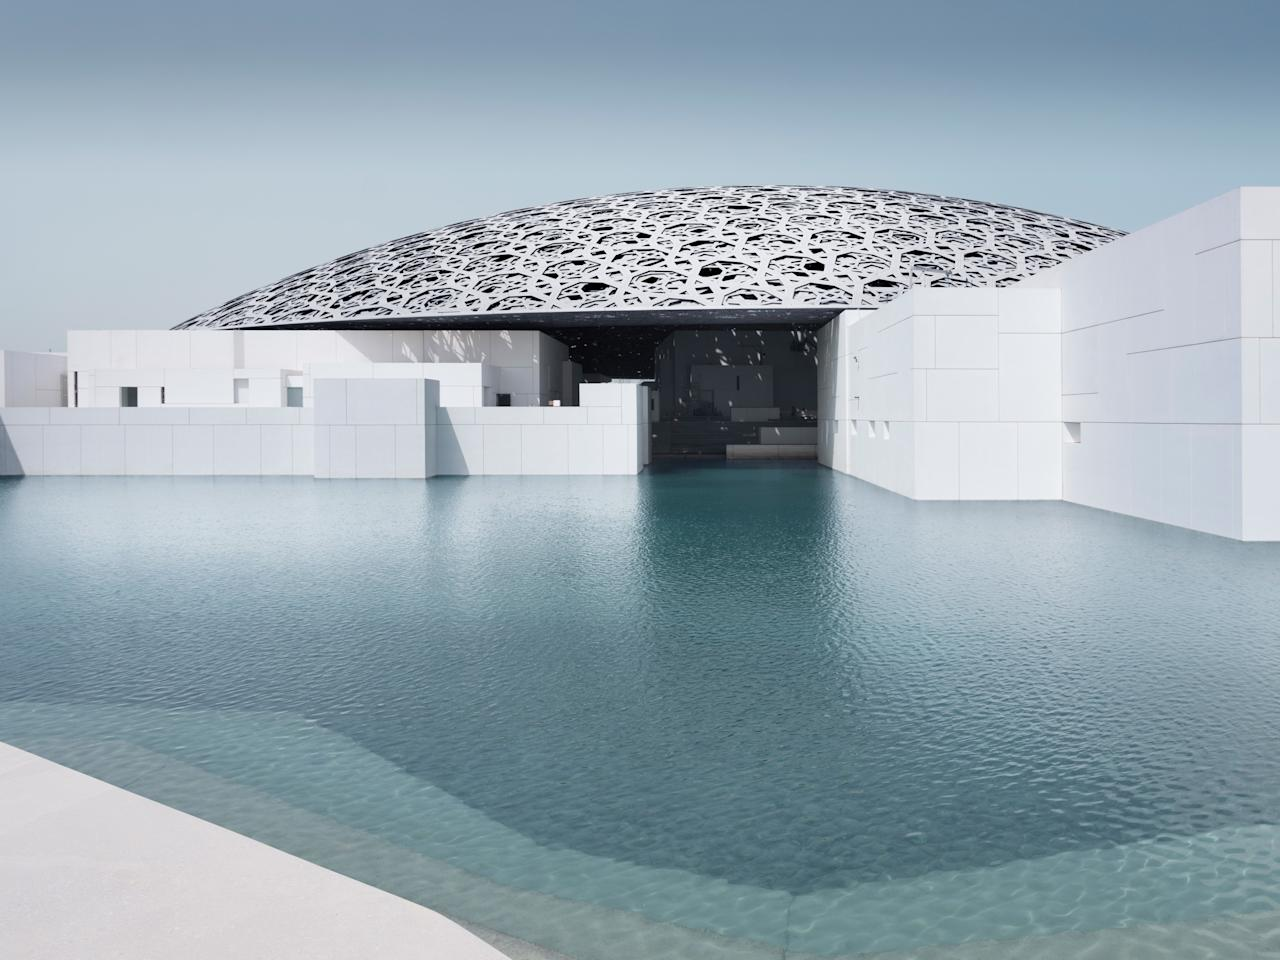 """<p><strong>What's this place all about?</strong><br> The Louvre has a new outpost in Abu Dhabi—well, sort of. The basis of a <a href=""""https://www.cntraveler.com/story/the-louvre-abu-dhabi-will-open-this-week-heres-what-to-expect?mbid=synd_yahoo_rss"""">long-anticipated cultural collaboration</a> between the U.A.E. and France dates back to 2007; after 10 years in the works, the museum opened with its own unique philosophy and interpretation. It's considered the first universal museum in the Arab world. If that isn't reason enough to visit, the futuristic architecture by Pritzker Prize winner Jean Nouvel certainly is.</p> <p><strong>Ye shall know them by their permanent collection: How was it?</strong><br> One of the most compelling aspects of this museum isn't the individual works, but the way they're curated. Rather than categorized by material or culture, they're displayed chronologically, making a walk through the museum feel like a journey through time. The collection itself, a compilation from French institutions and pieces from Abu Dhabi, highlights the connections and universal themes among global cultures and eras.</p> <p><strong>How were the exhibits?</strong><br> Four temporary exhibits rotate through the museum every year. In collaboration with 13 French museum partners, the temporary exhibits revolve around a theme; say, archeological treasures of Saudi Arabia, modern Japanese decor, and the Dutch Golden Age.</p> <p><strong>What did you make of the crowd?</strong><br> Families, expats, corporate outings, school field trips: A universal museum draws an equally universal audience.</p> <p><strong>On the practical tip, how were the facilities?</strong><br> The chronological format makes it easy to wander through in a seamless manner. But the lack of signage and meandering pathways sometimes make it unclear where to go next.</p> <p><strong>Any guided tours worth trying?</strong><br> The Essential Tour is a thematic 90-minute guided tour through the museum; the Se"""